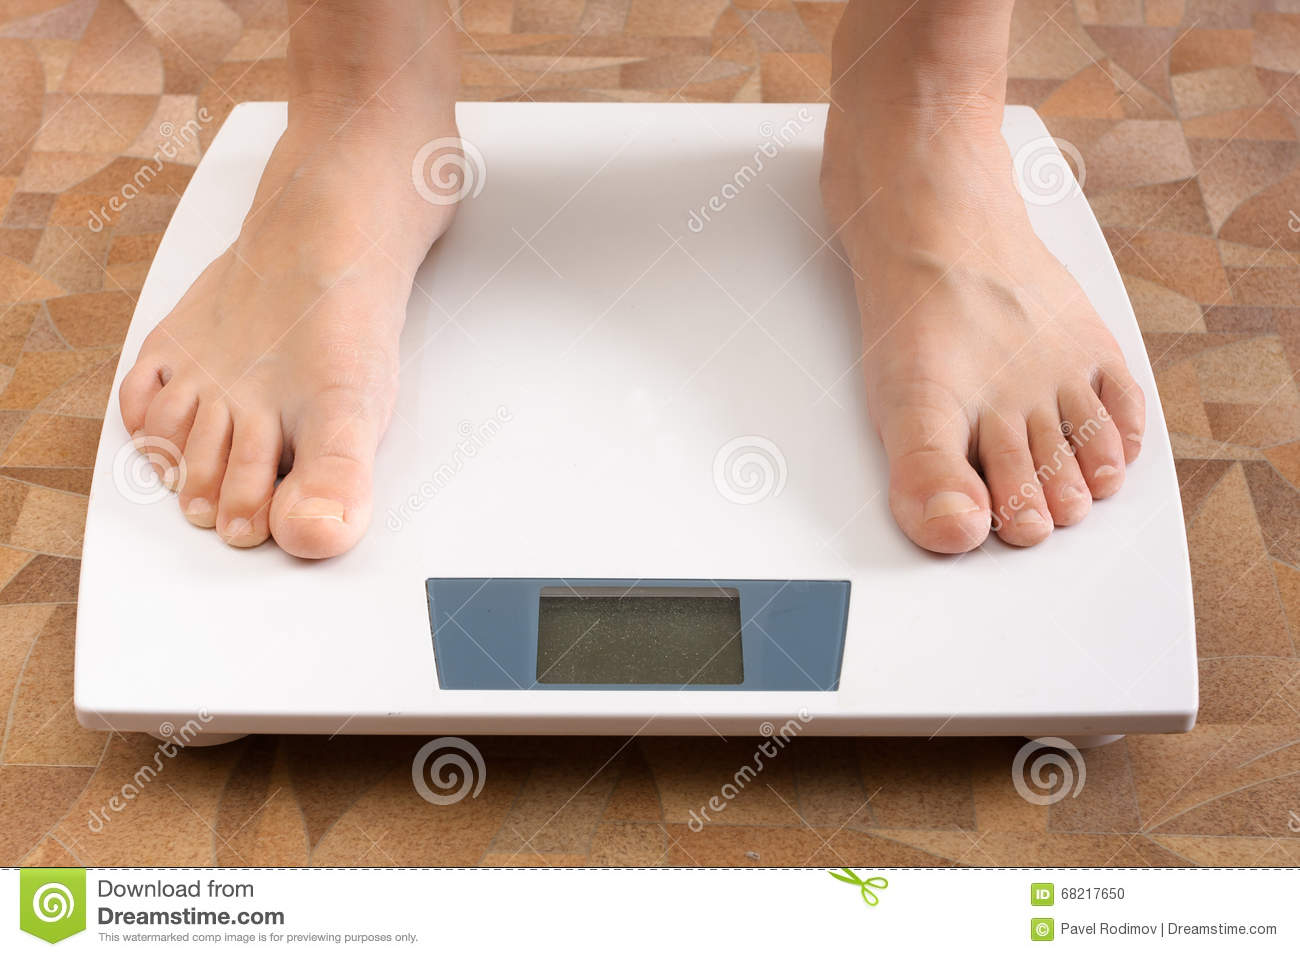 Pair feet standing on the scale